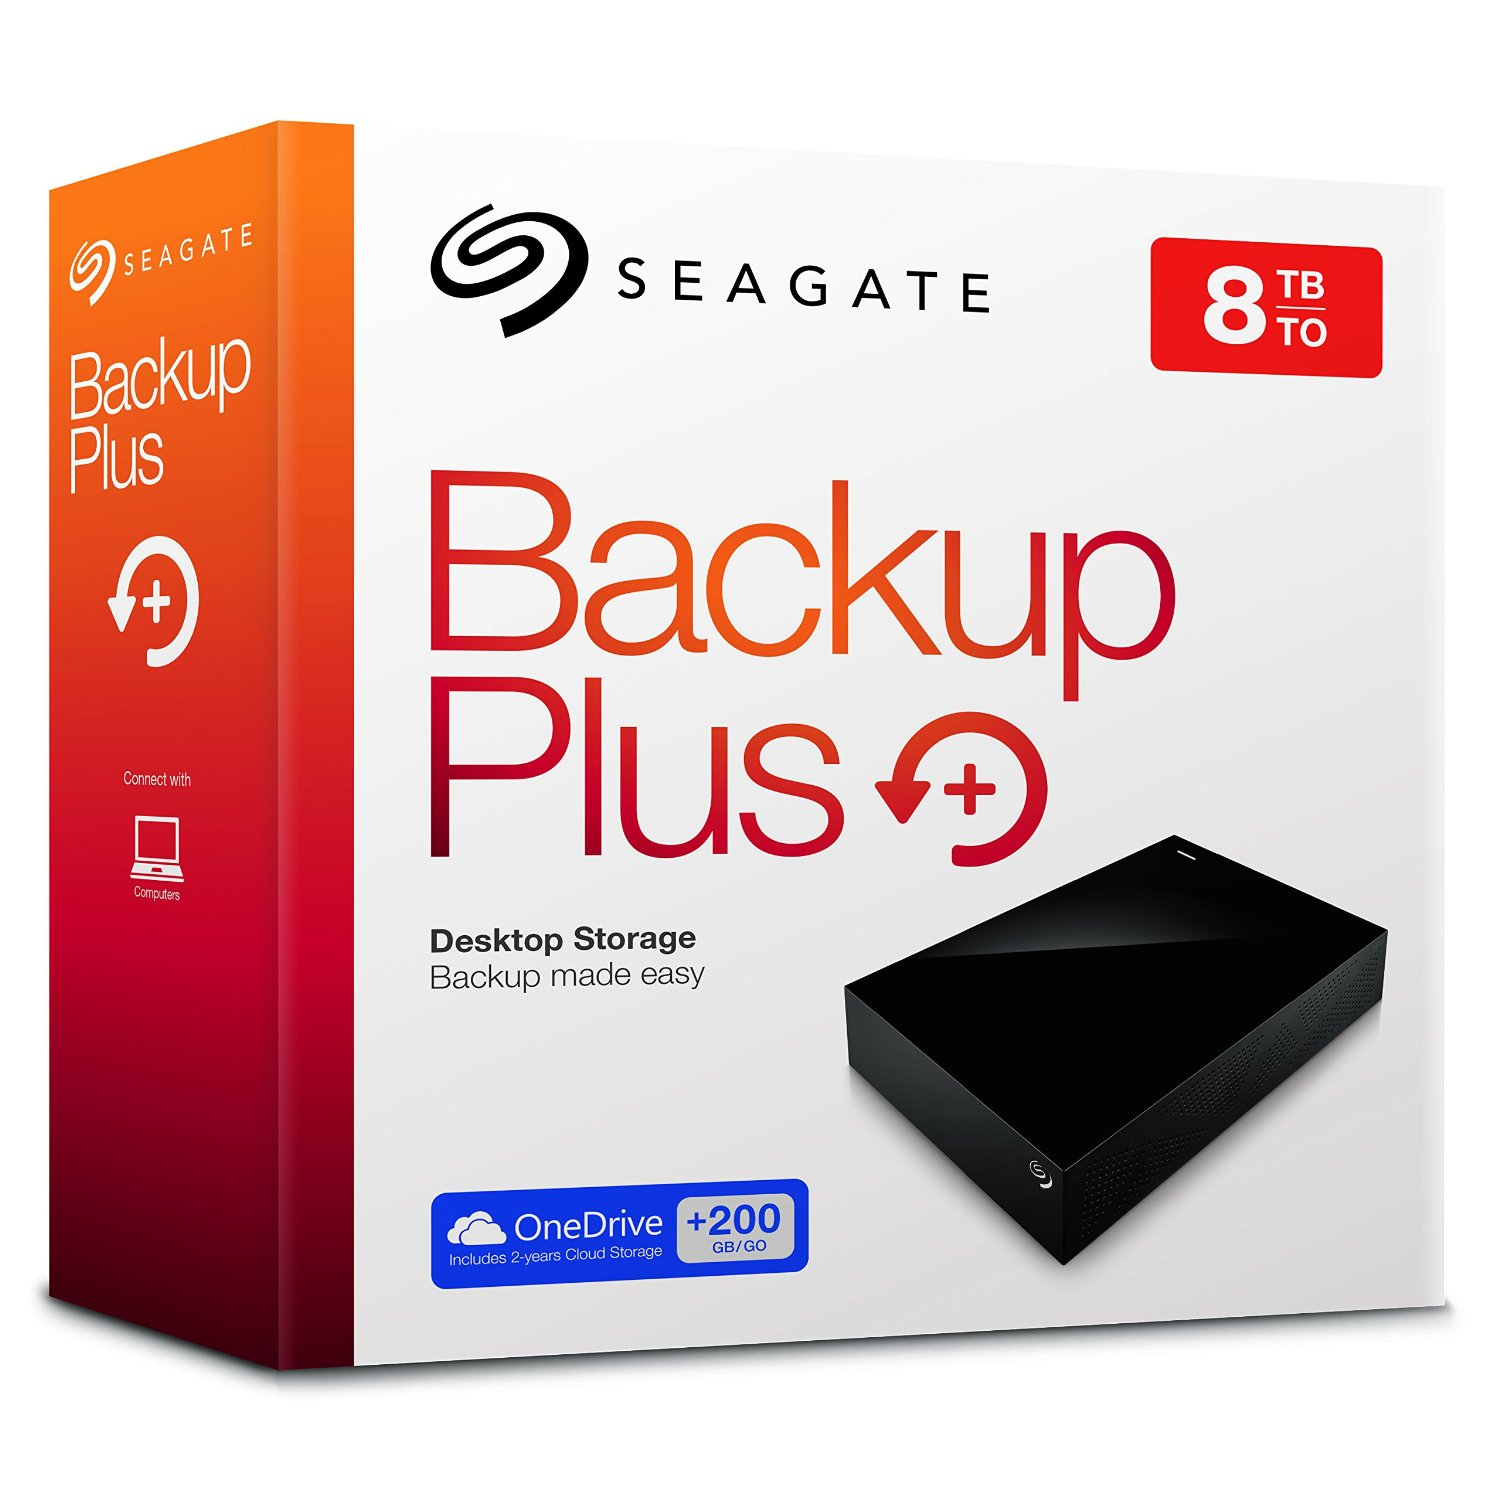 Seagate Backup Plus 8tb Desktop External Hard Drive With 200gb Of Cloud Storage Mobile Device Usb 3 0